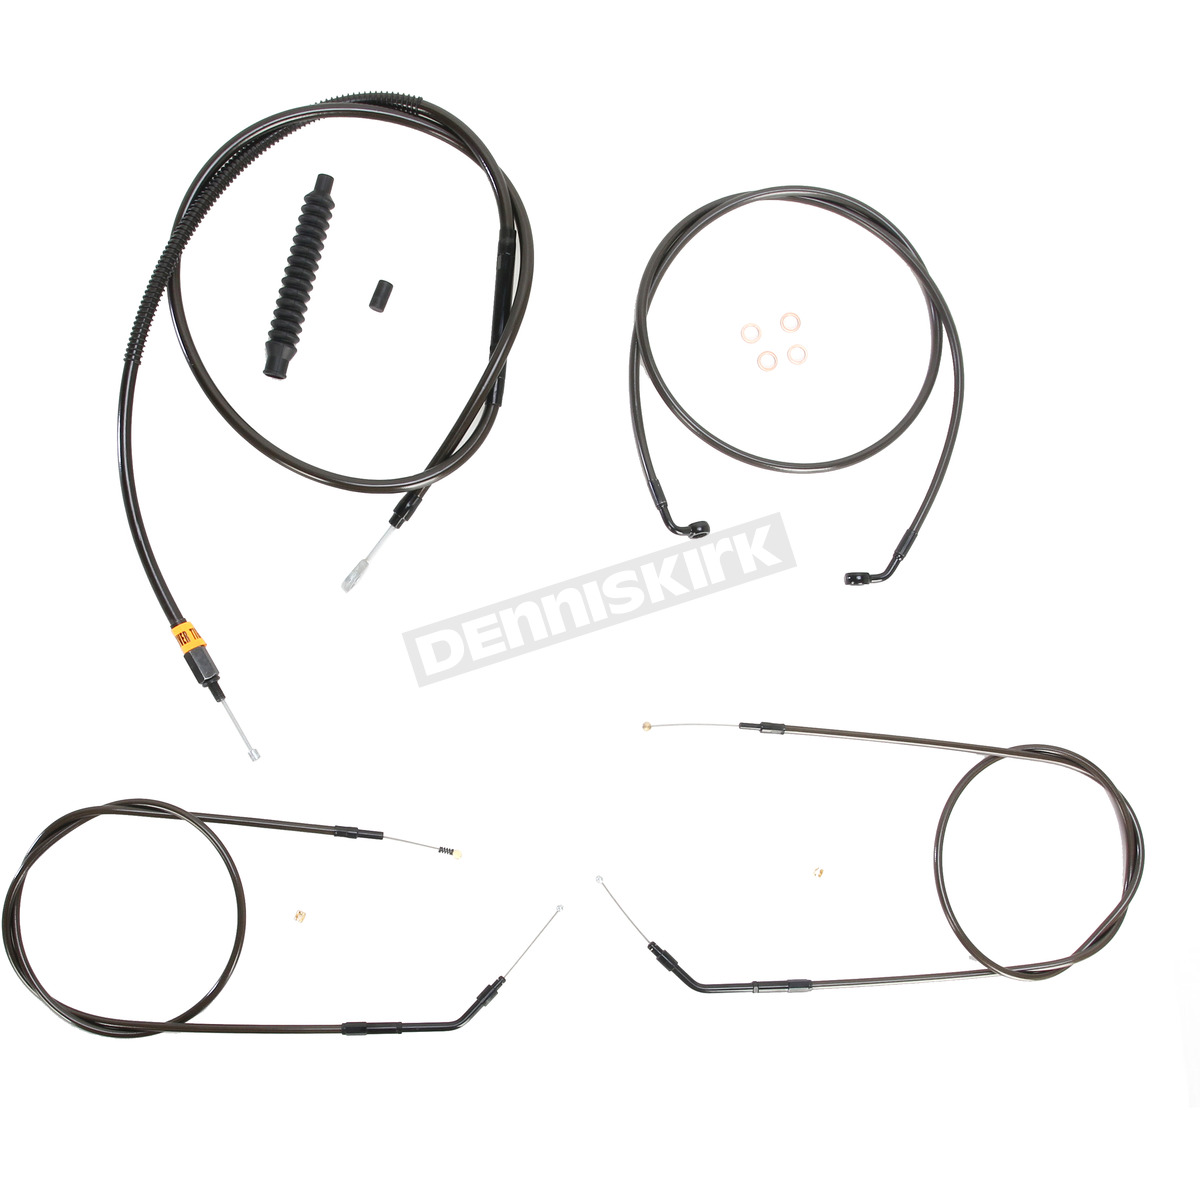 La Choppers Midnight Stainless Handlebar Cable And Brake Line Kit For Use W 12 In To 14 In Ape